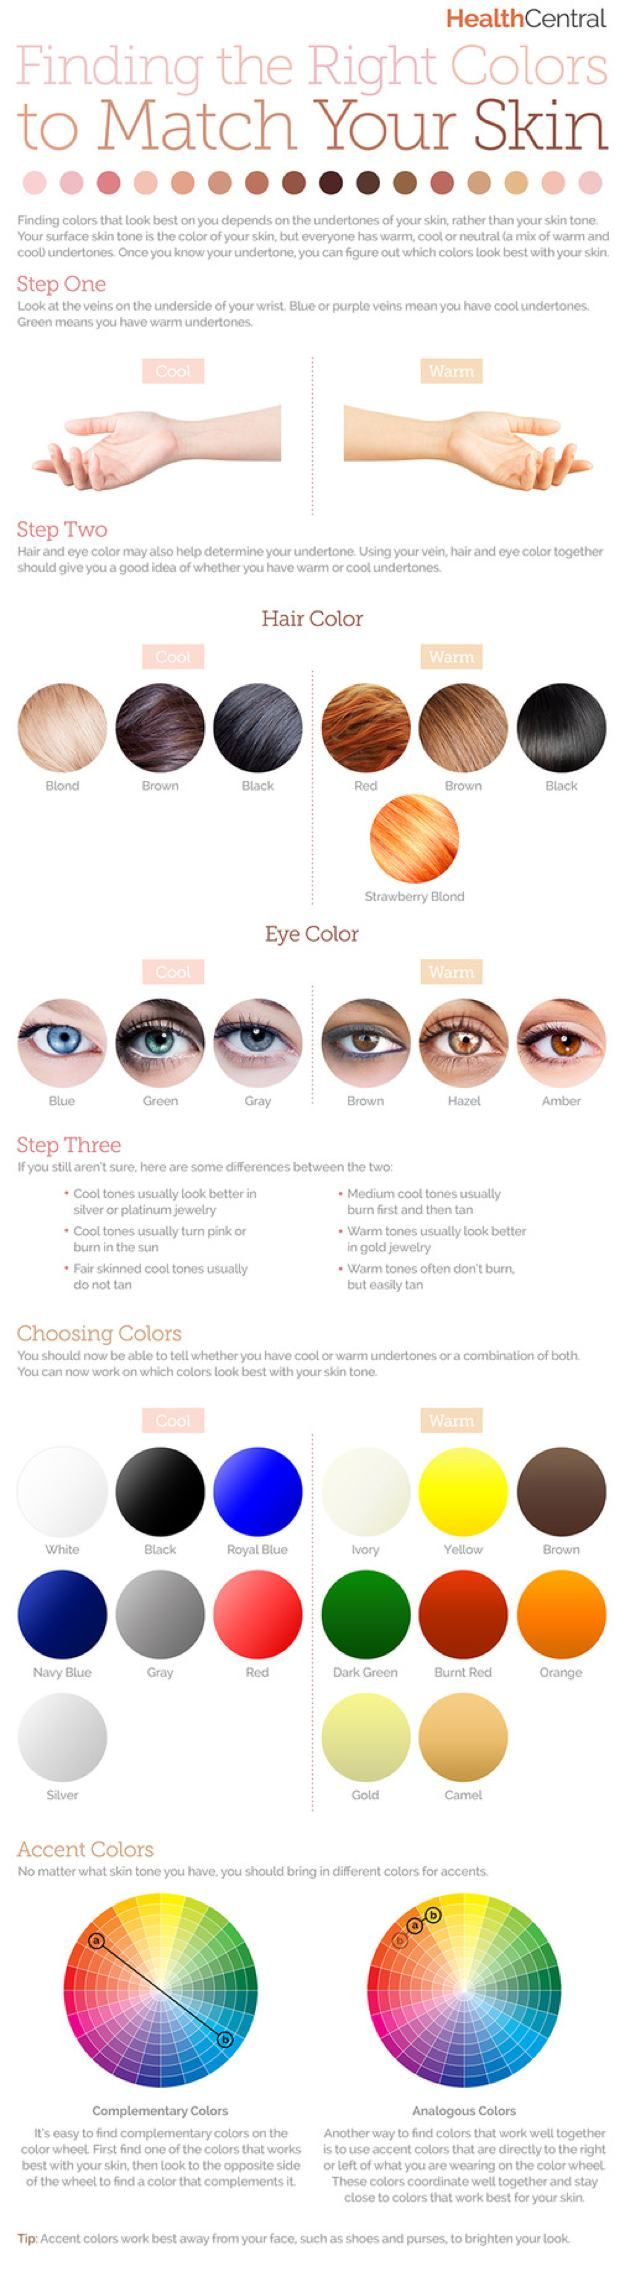 Online color wheel games - Best Makeup Tutorials And Beauty Tips From The Web